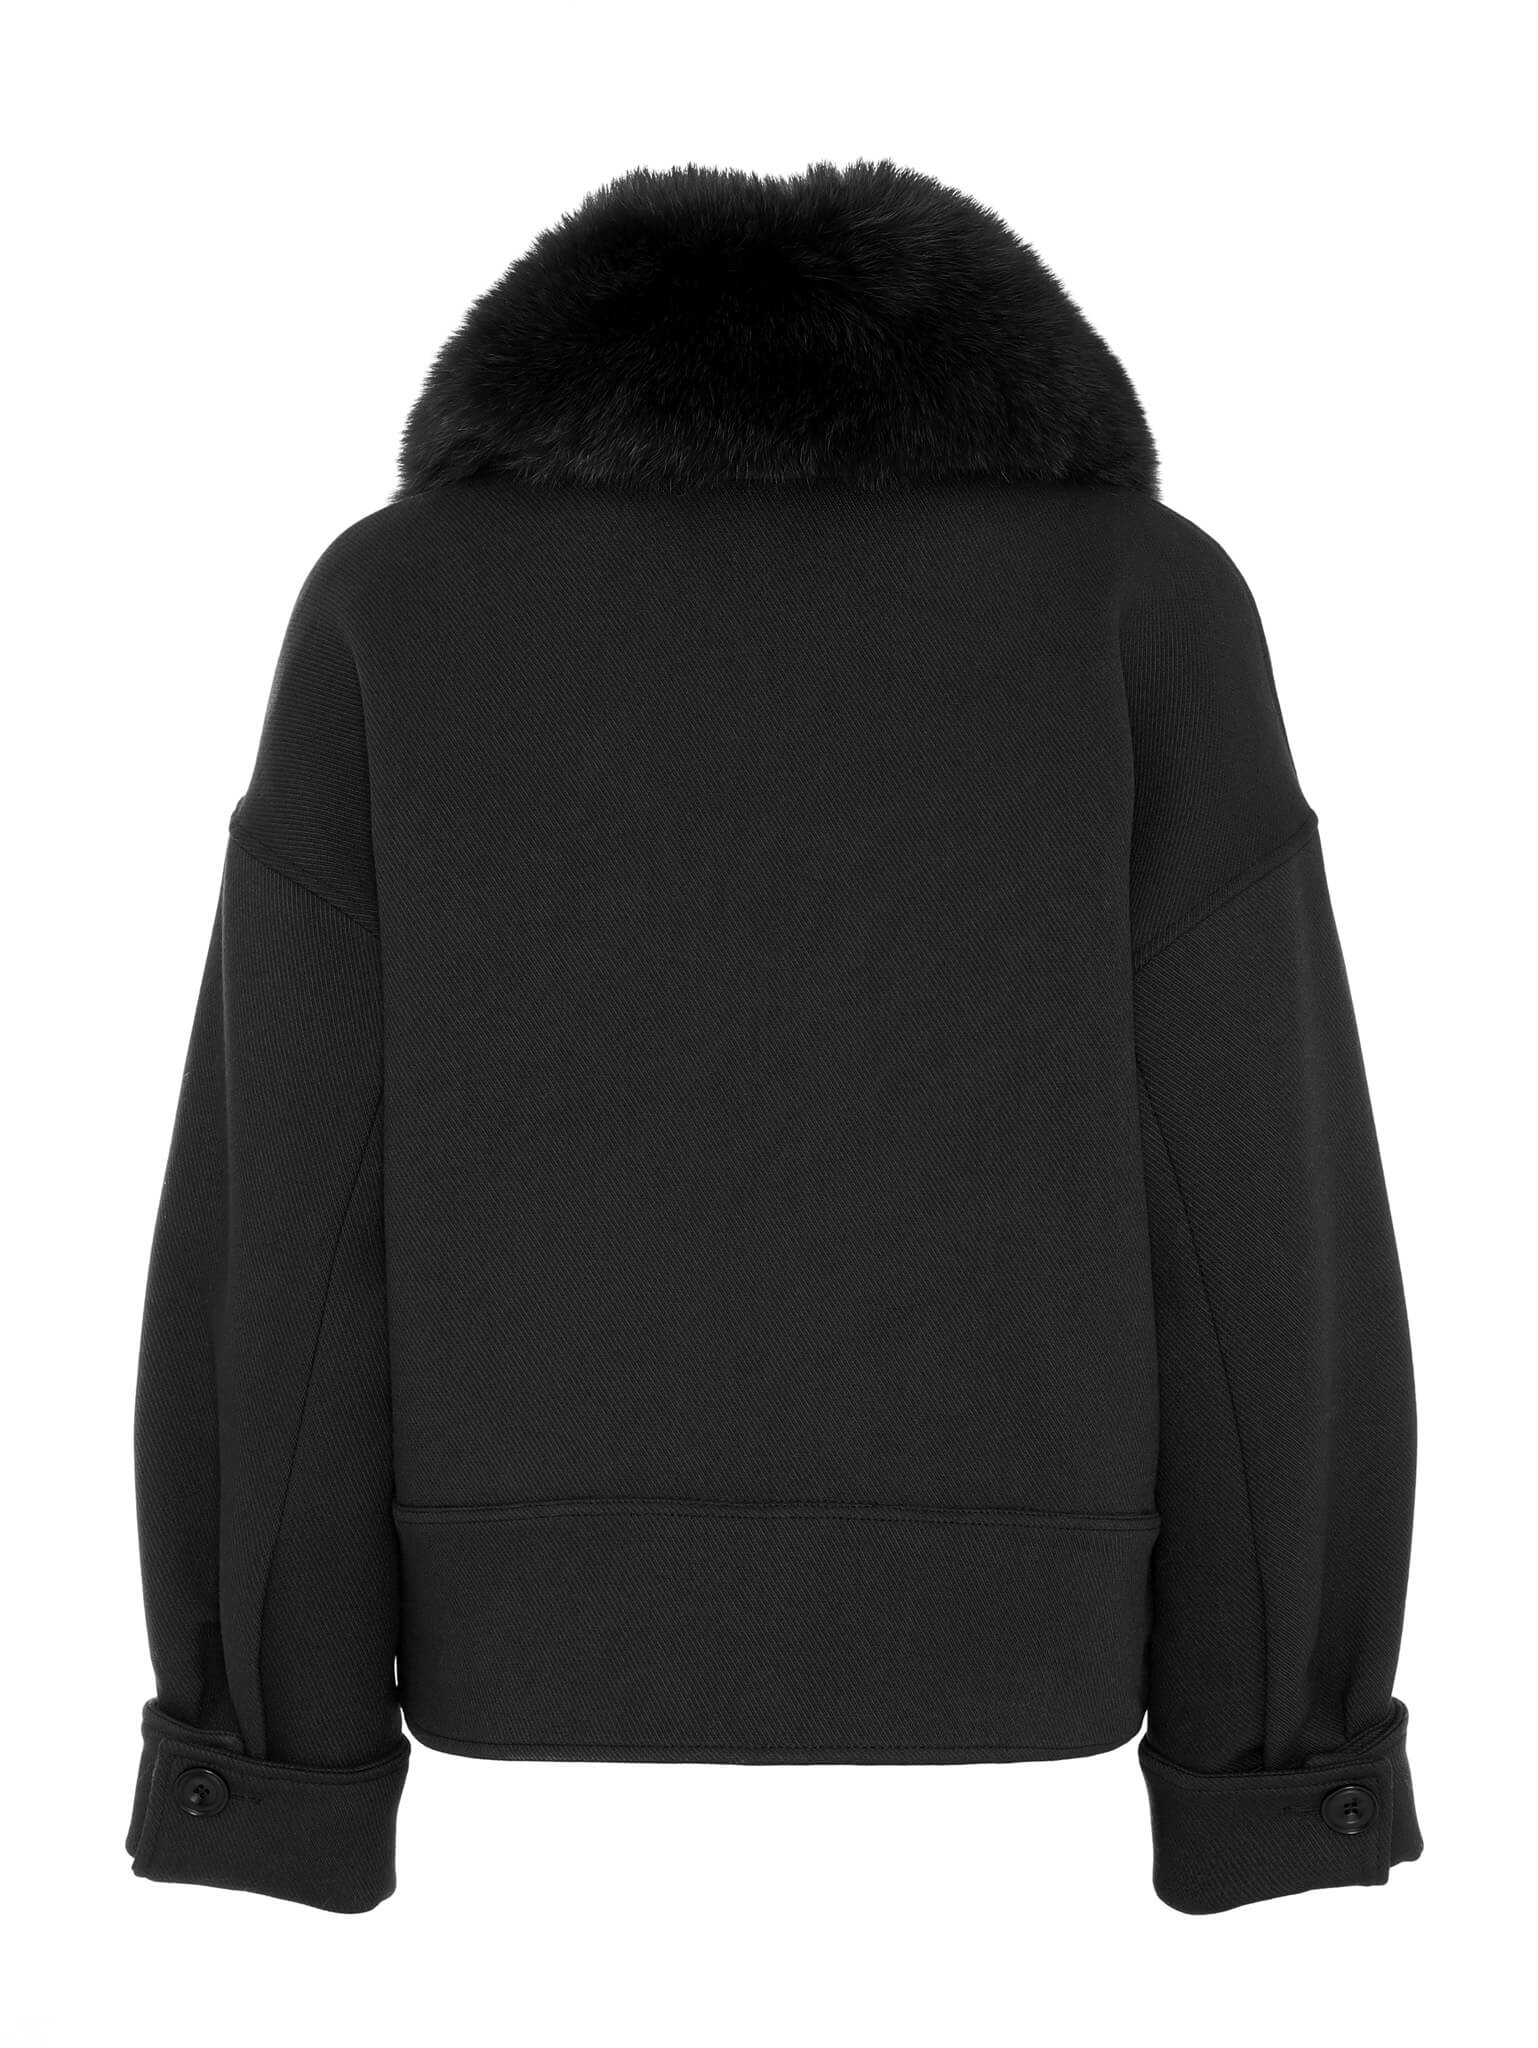 CHARLIE JACKET - BLACK